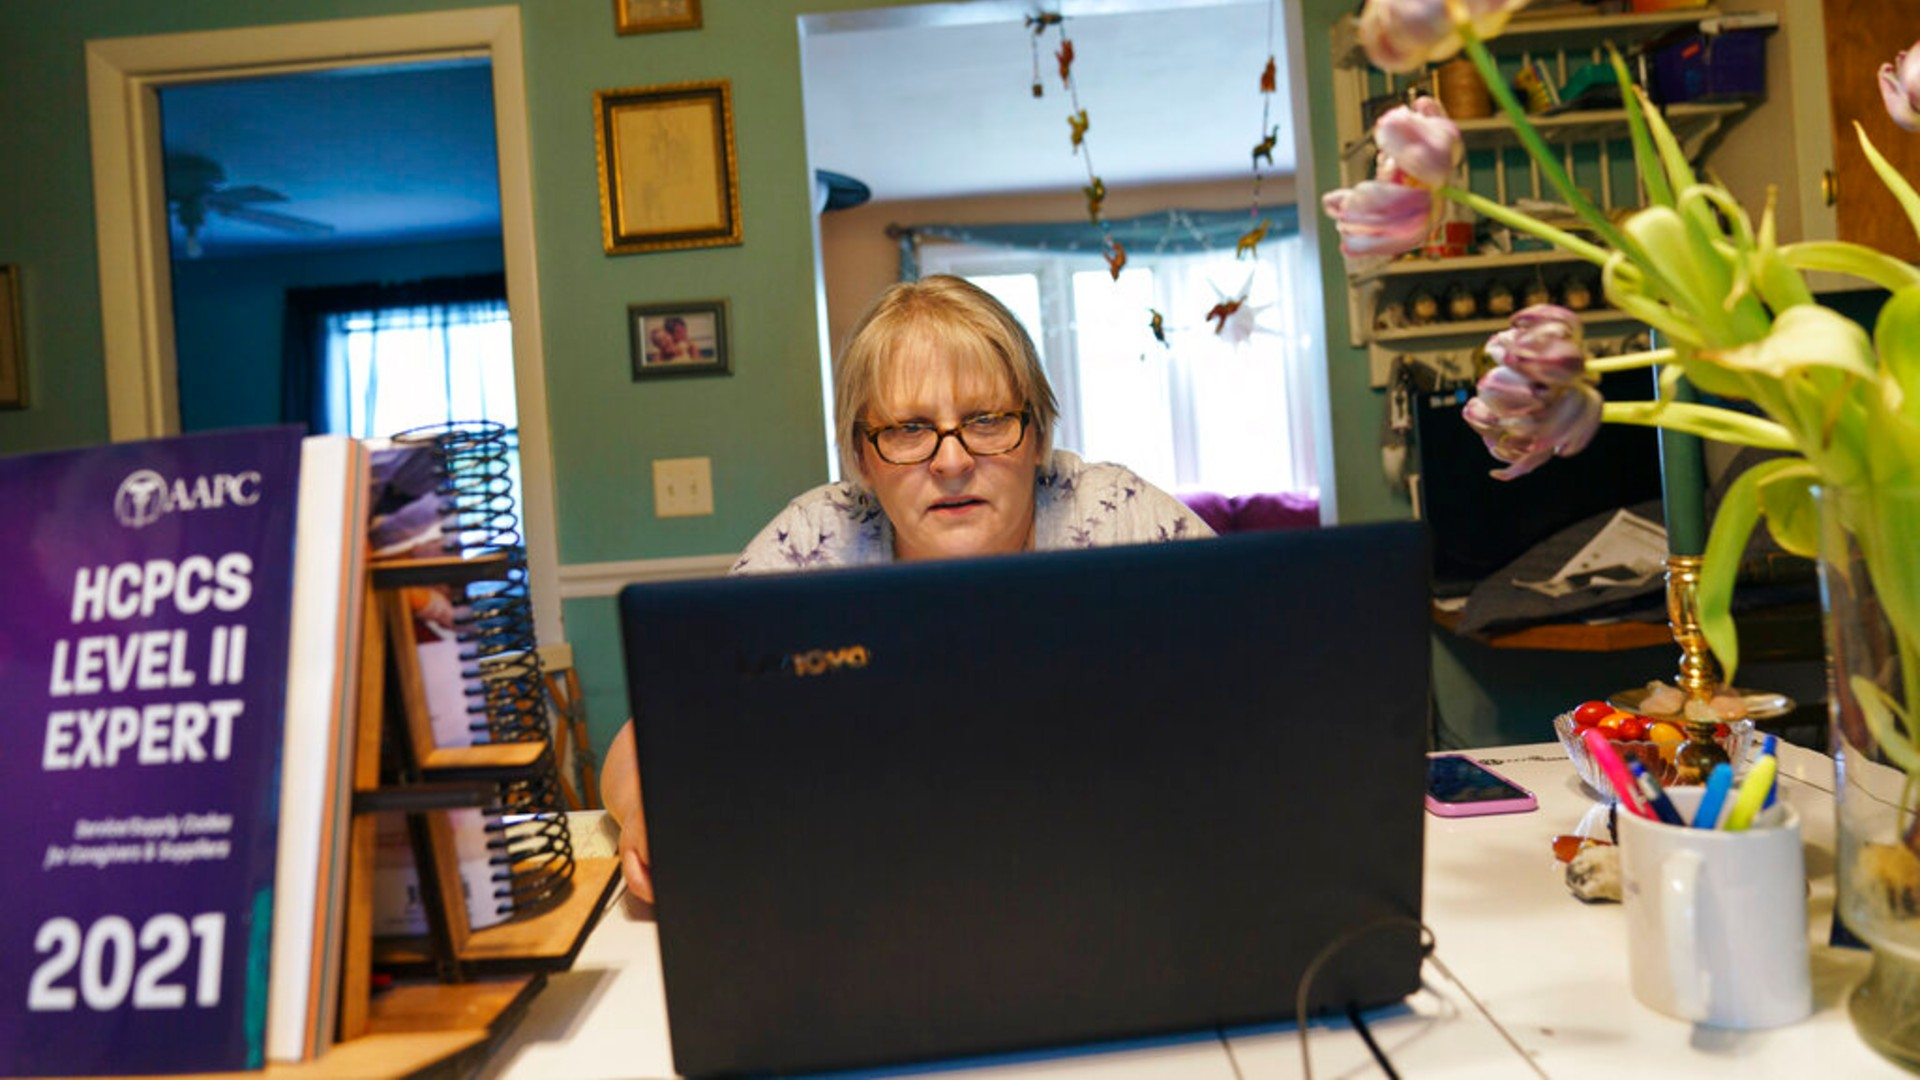 Ellen Booth, 57, studies at her kitchen table to become a certified medical coder, in Coventry, R.I., Monday, May 17, 2021. (AP Photo/David Goldman)